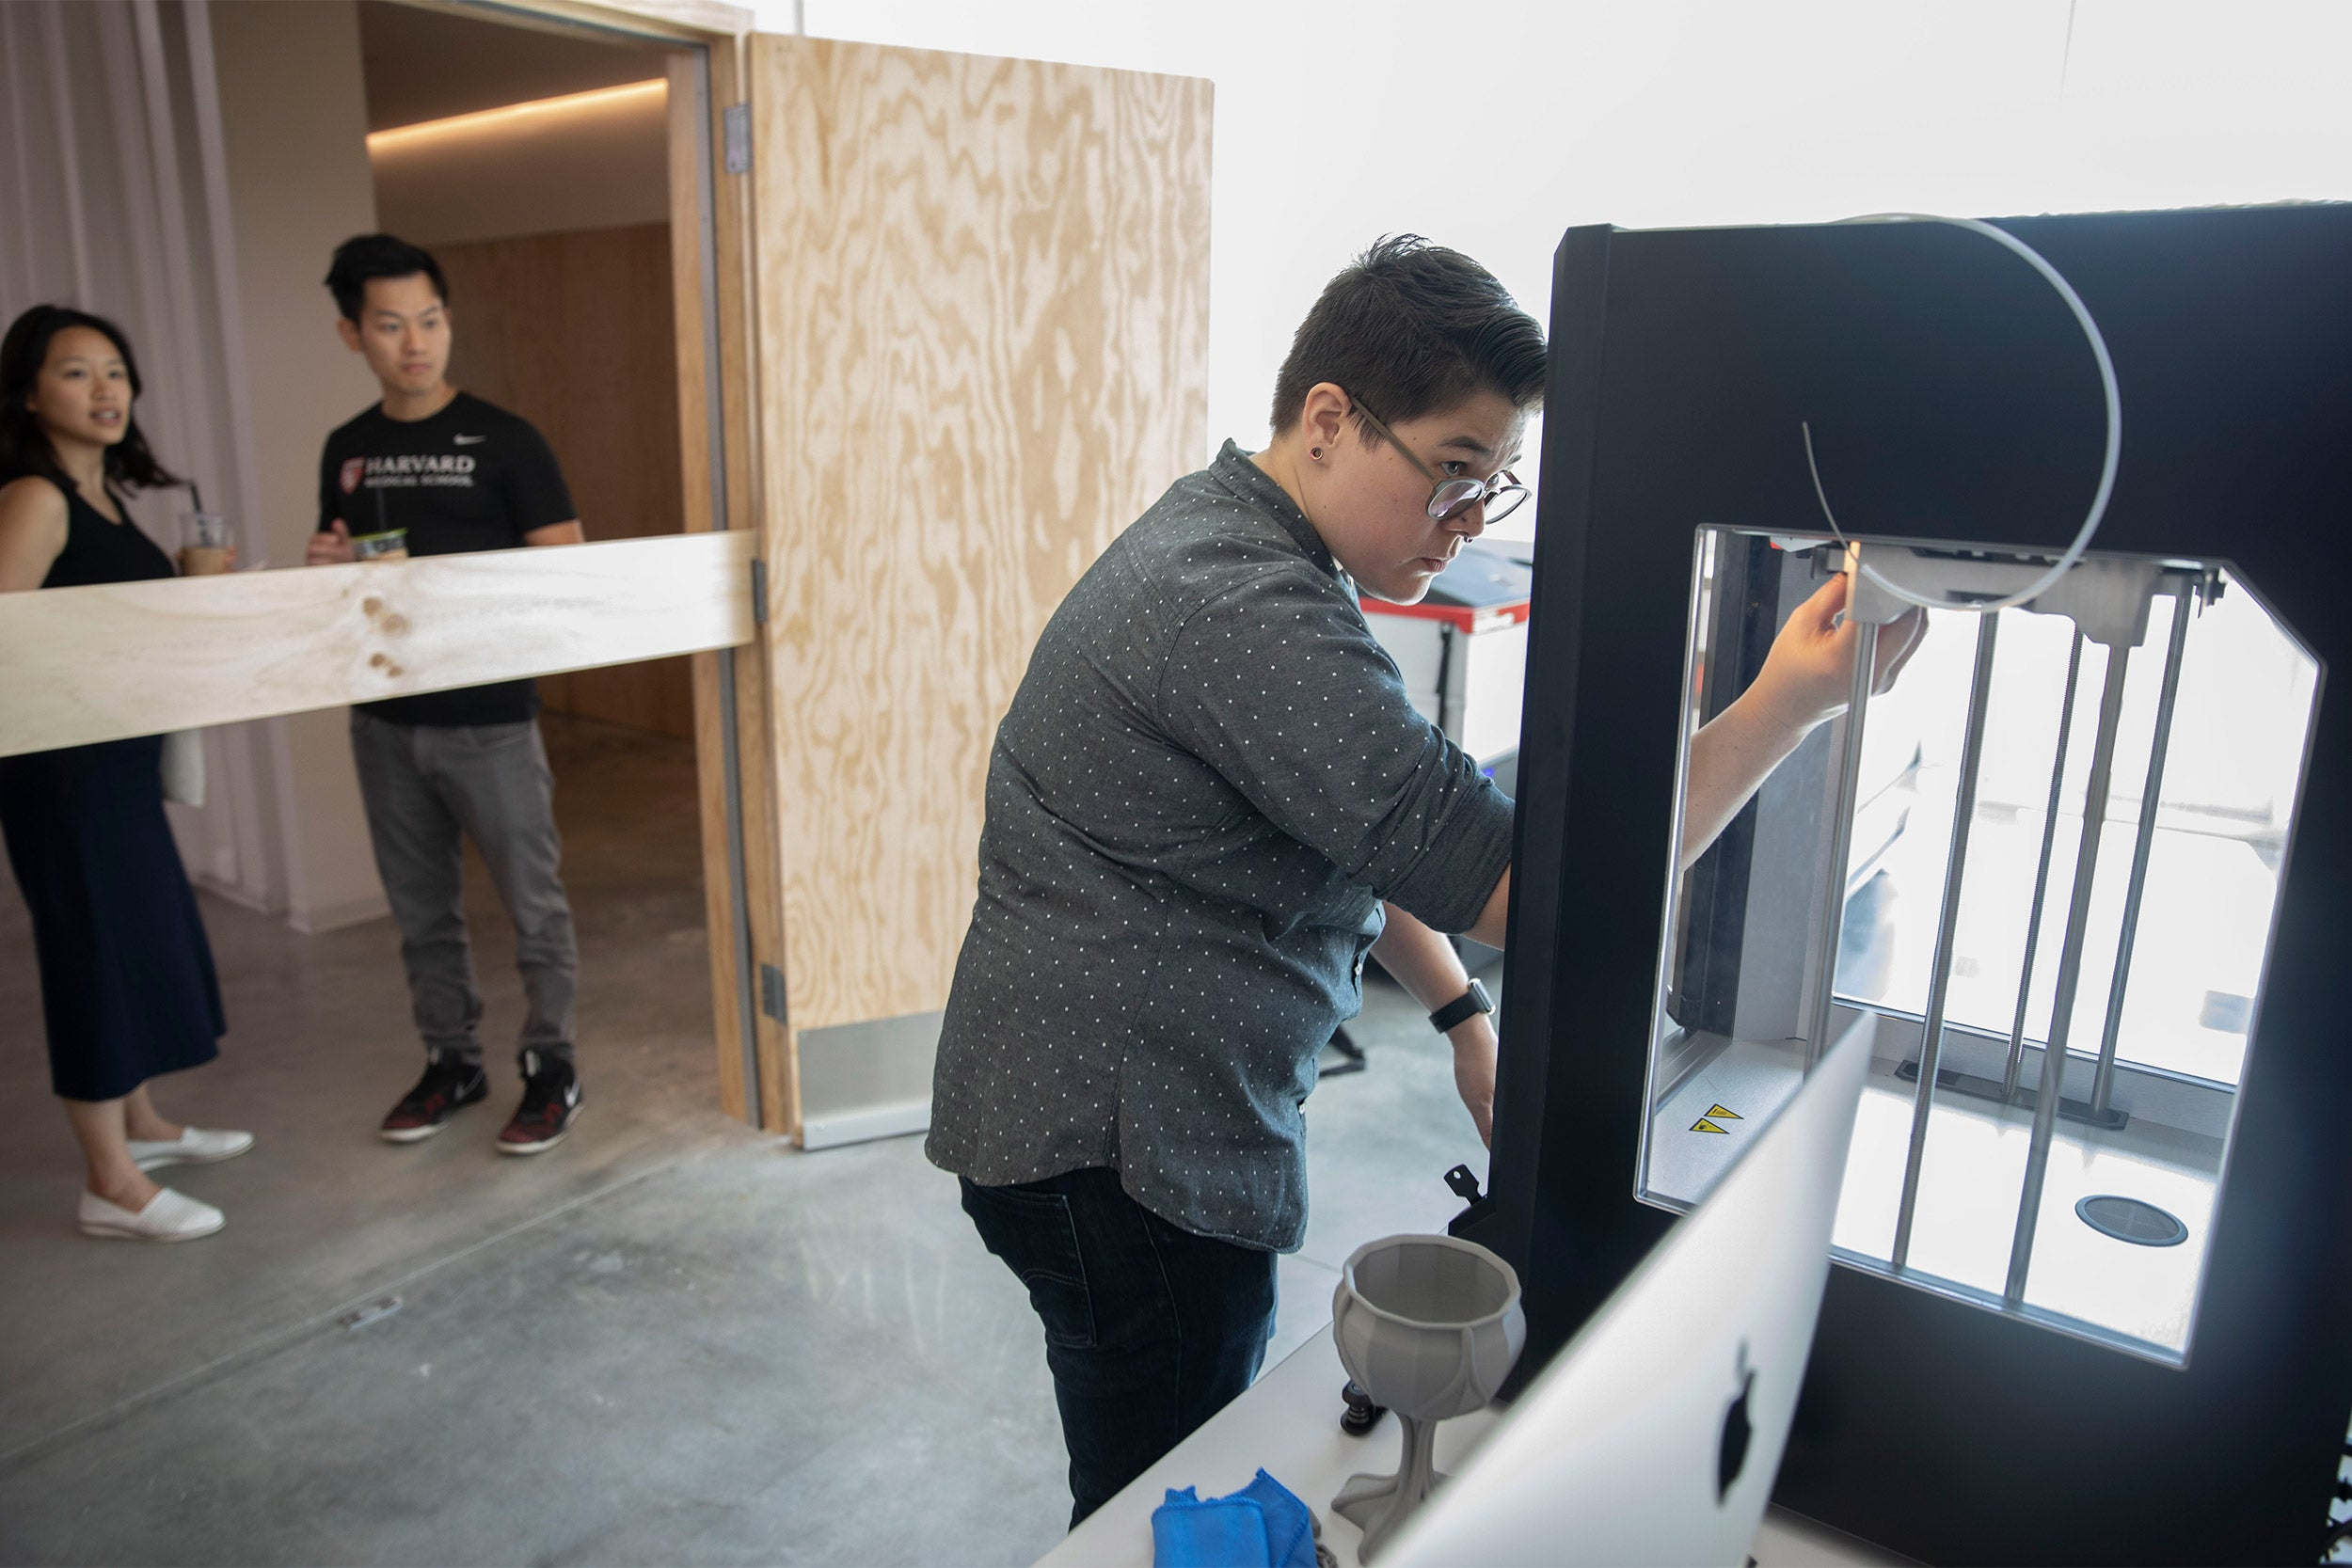 Kat Nakaji, Production & Technical Specialist shows 3D printing during ArtLab Open House